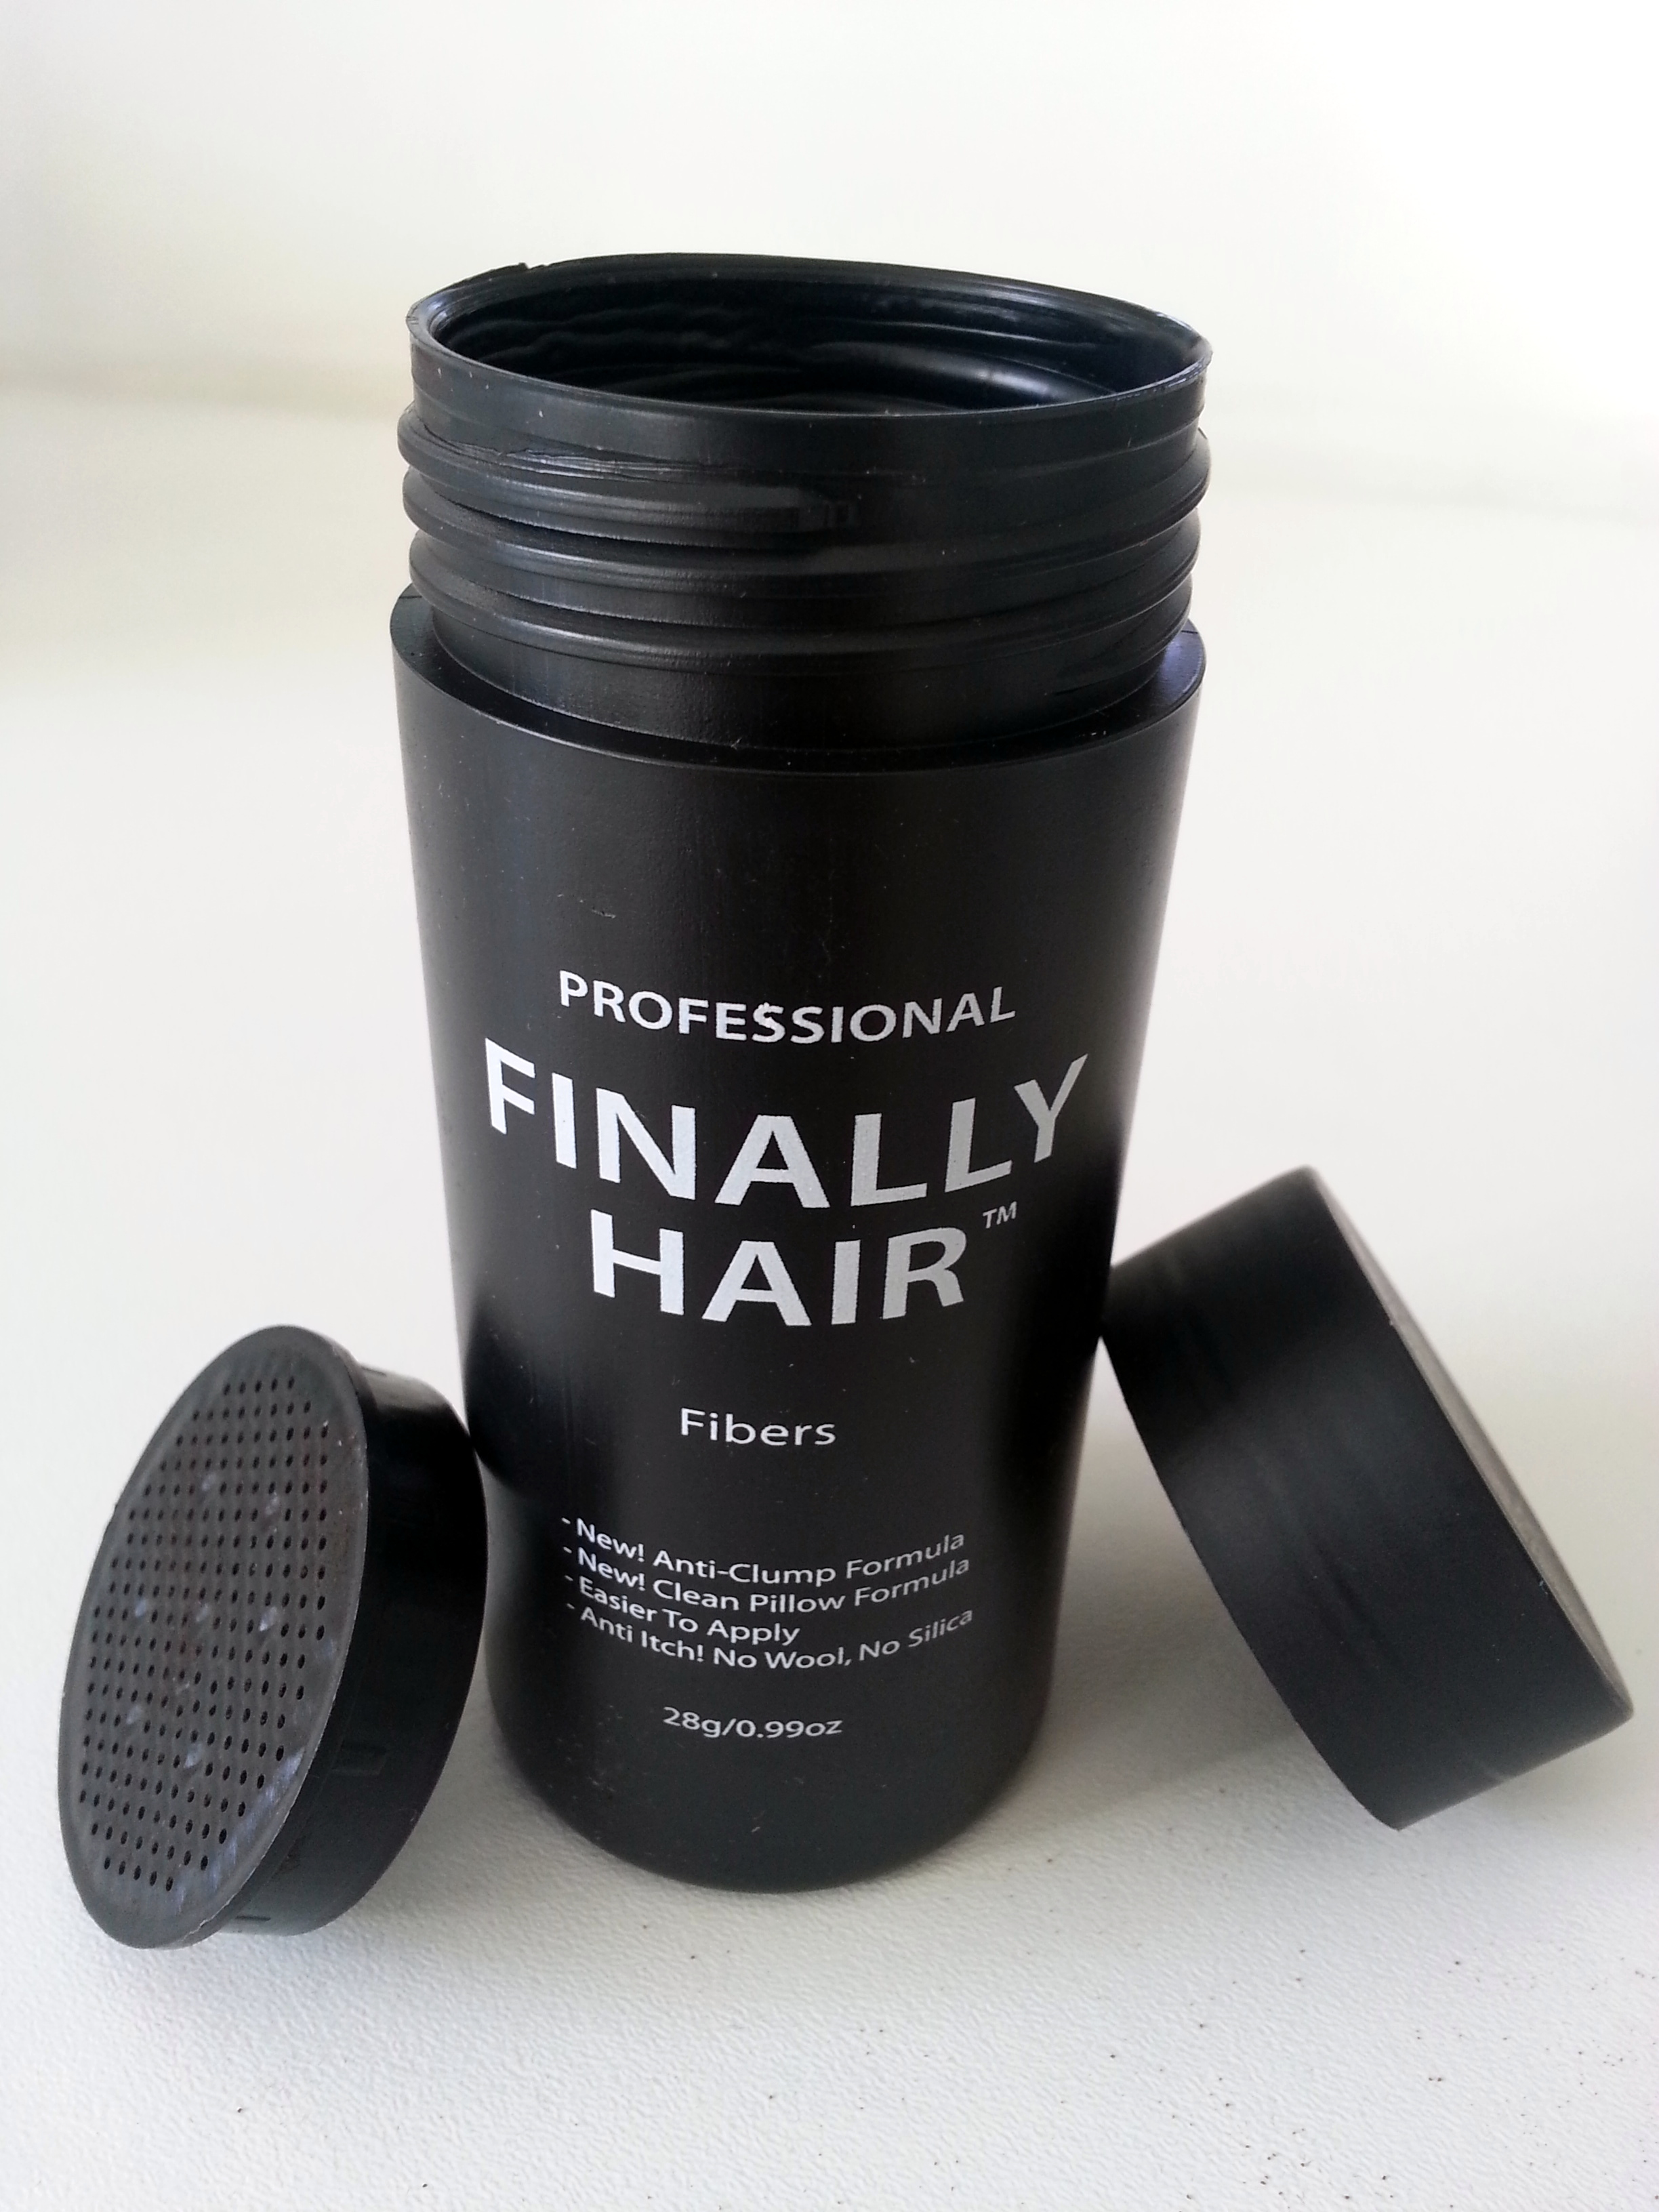 Hair Fiber Empty Finally Hair Fiber Applicator Bottle